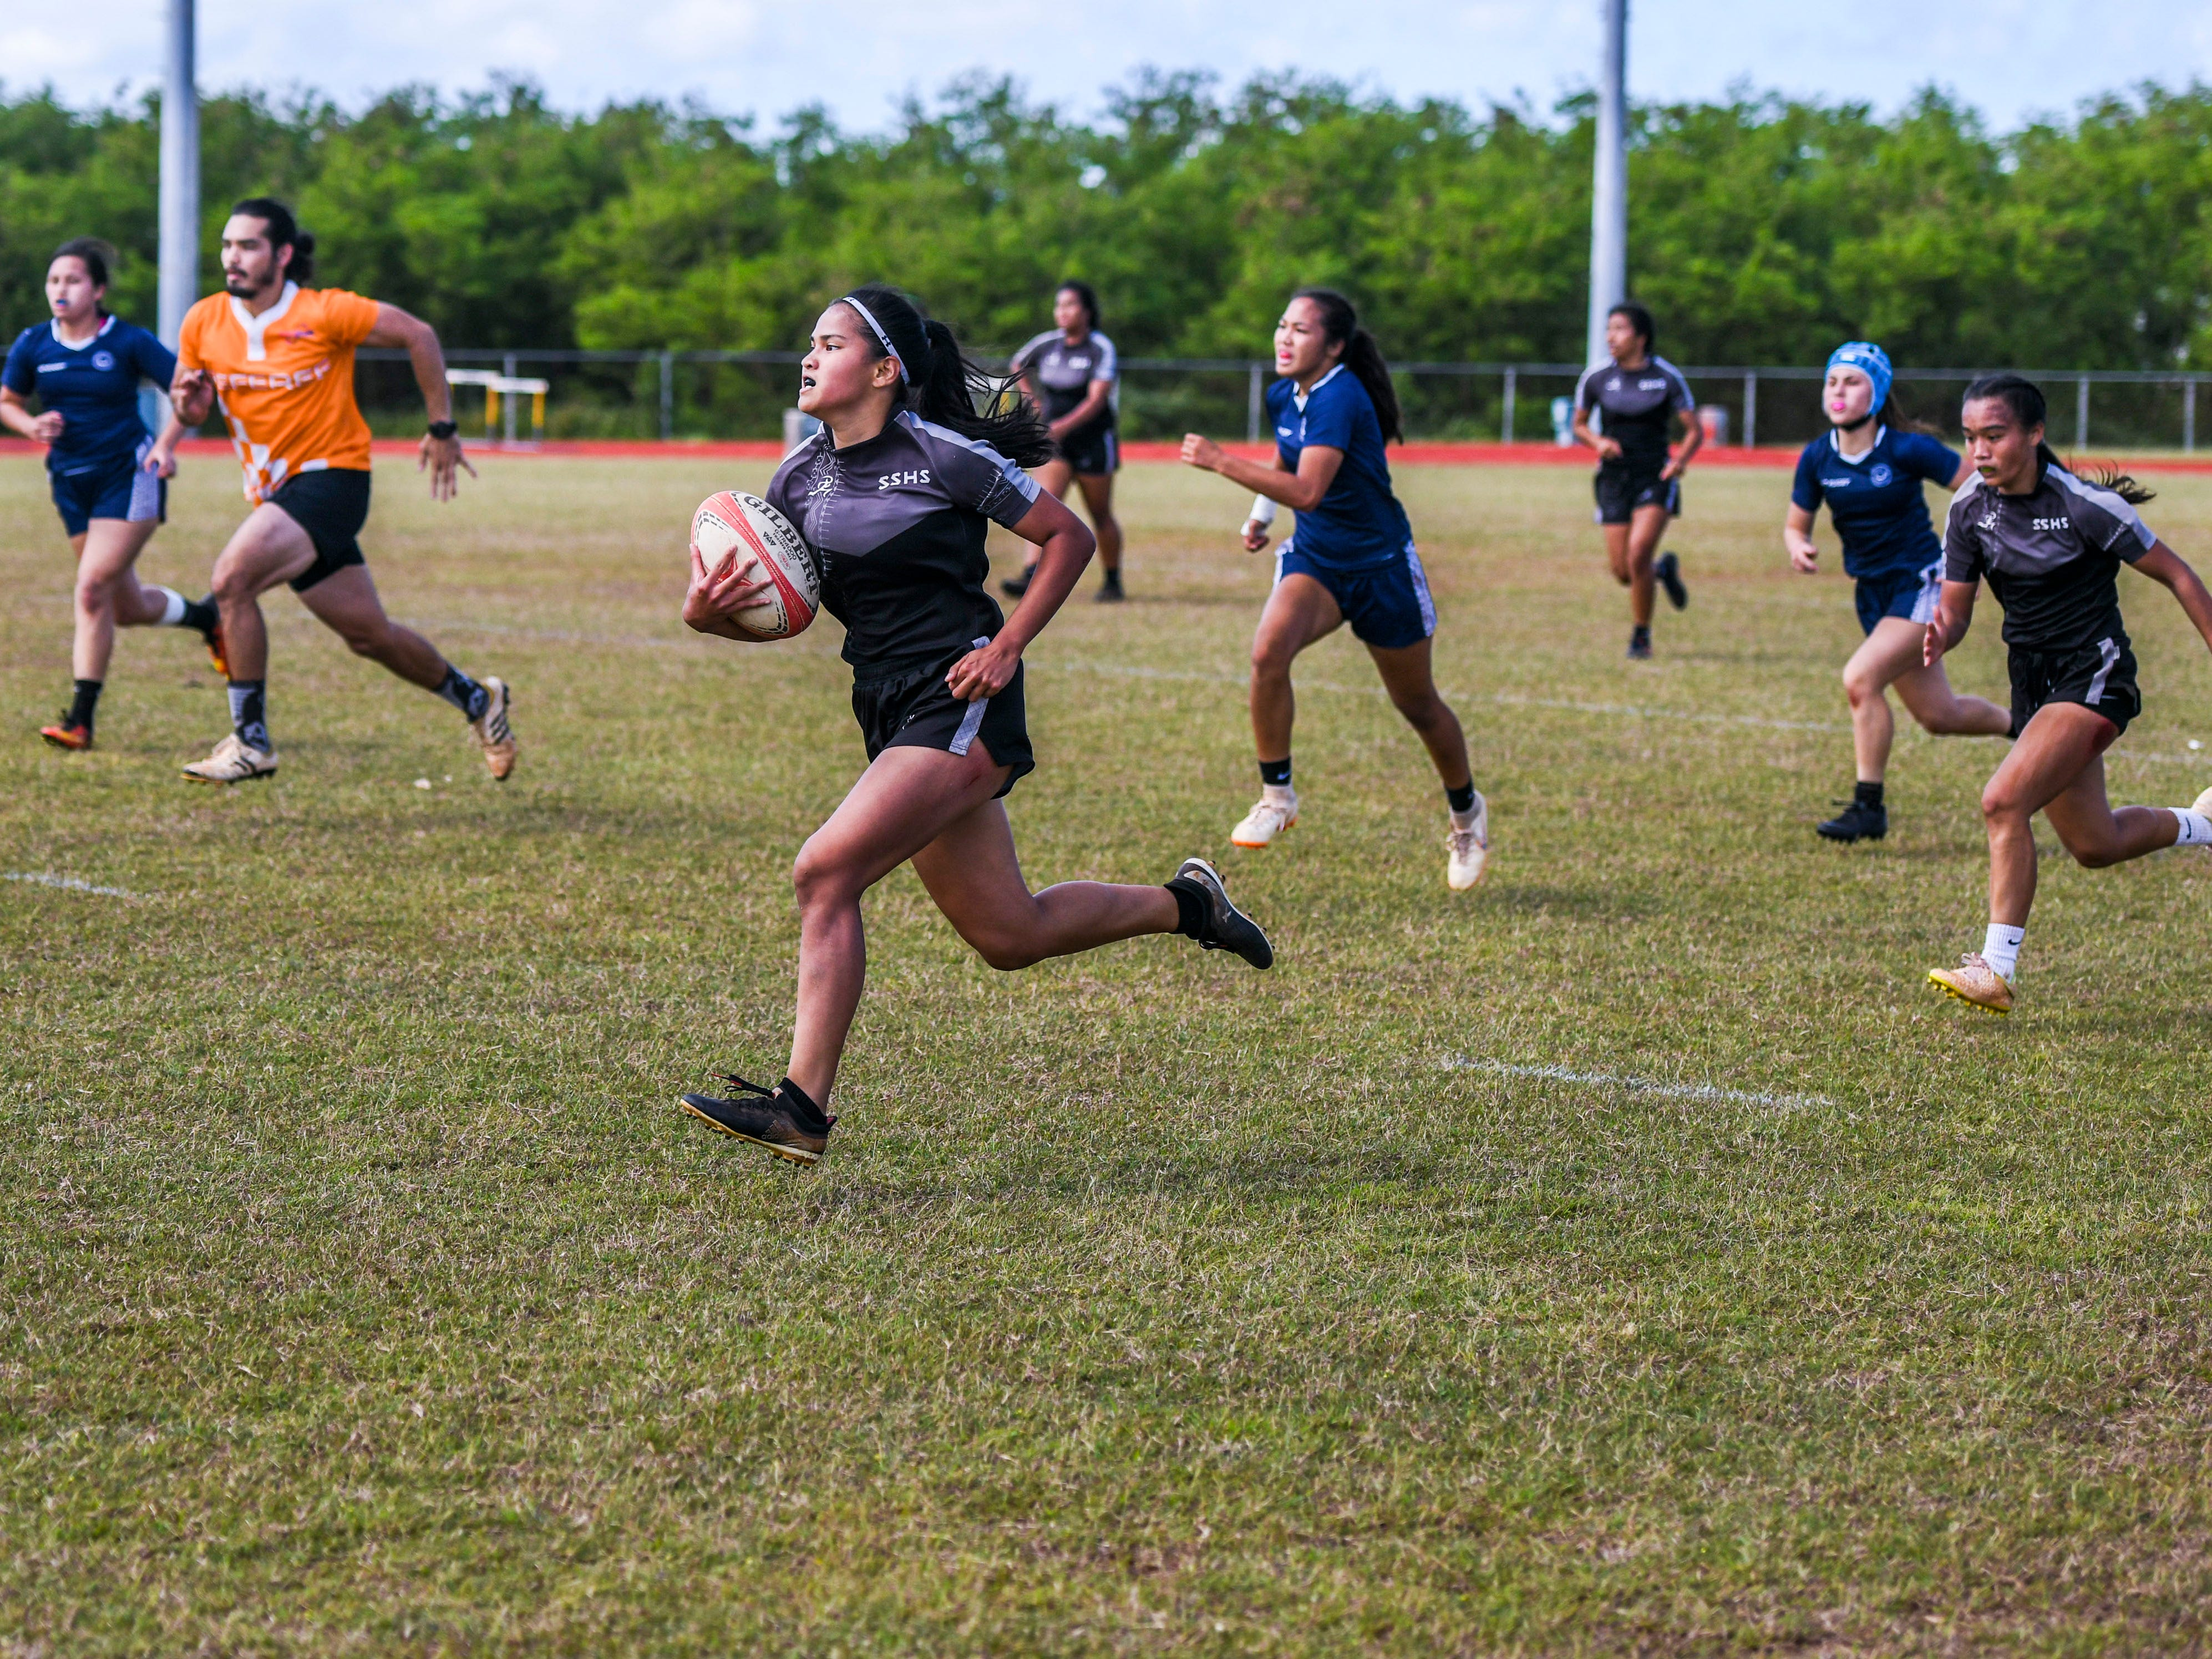 The Simon Sanchez High School Sharks' Angelyn Sobrevilla breaks away on her way to score a try during their Girls Varsity IIAAG/GRFU rugby matchup against the Notre Dame High School Royals on Ramsey Field at the John F. Kennedy High School in Tamuning on Saturday, March 9, 2019. In the end, the Royals defeated the Sharks with a final score of 14-12.